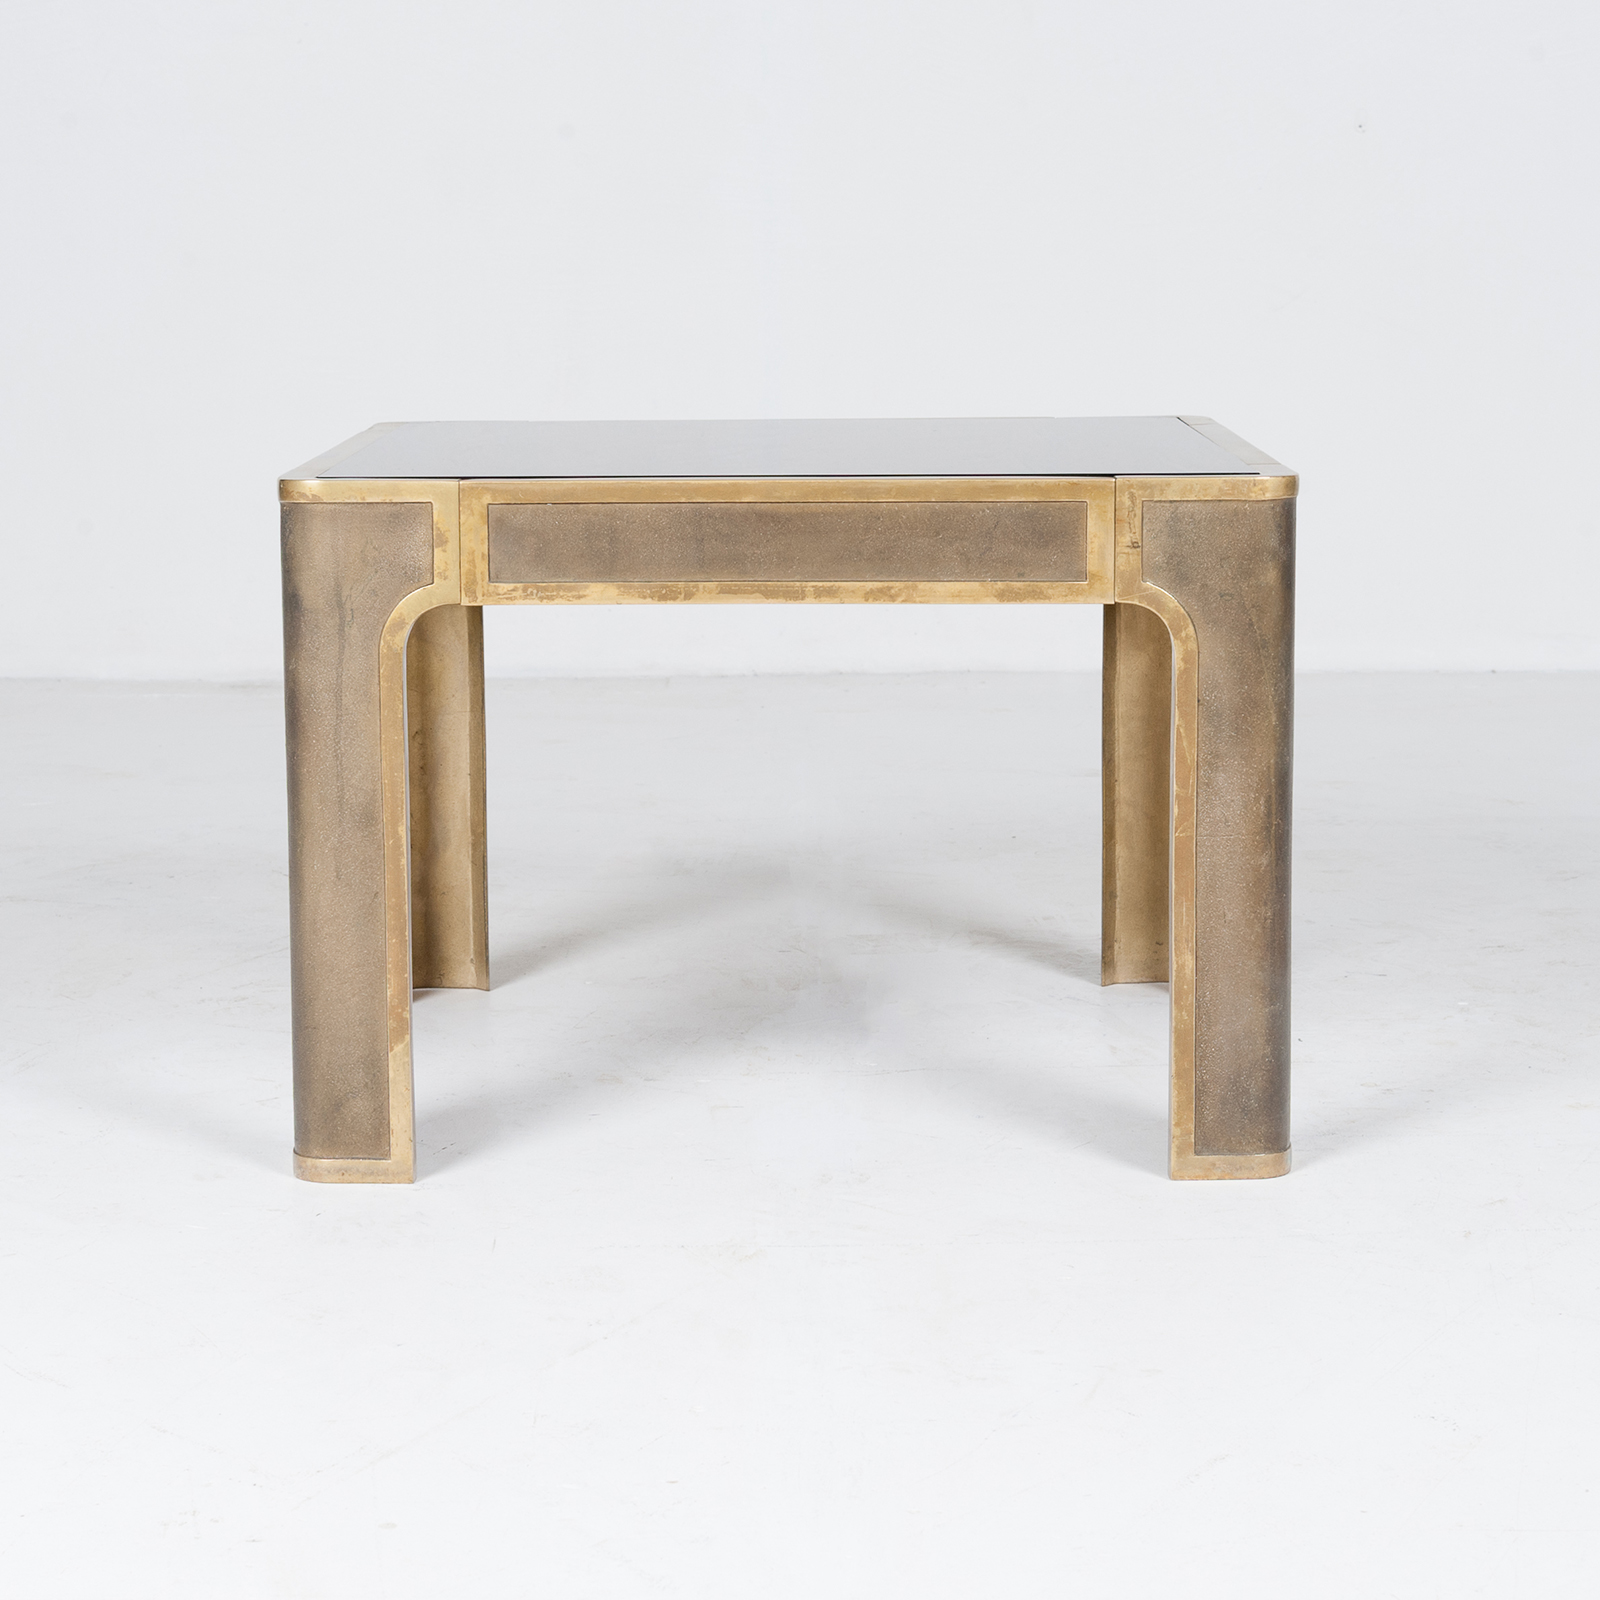 Square Coffee Table By Peter Ghyczy With Smoked Glass Top And Embossed Base, 1970s, The Netherlands894